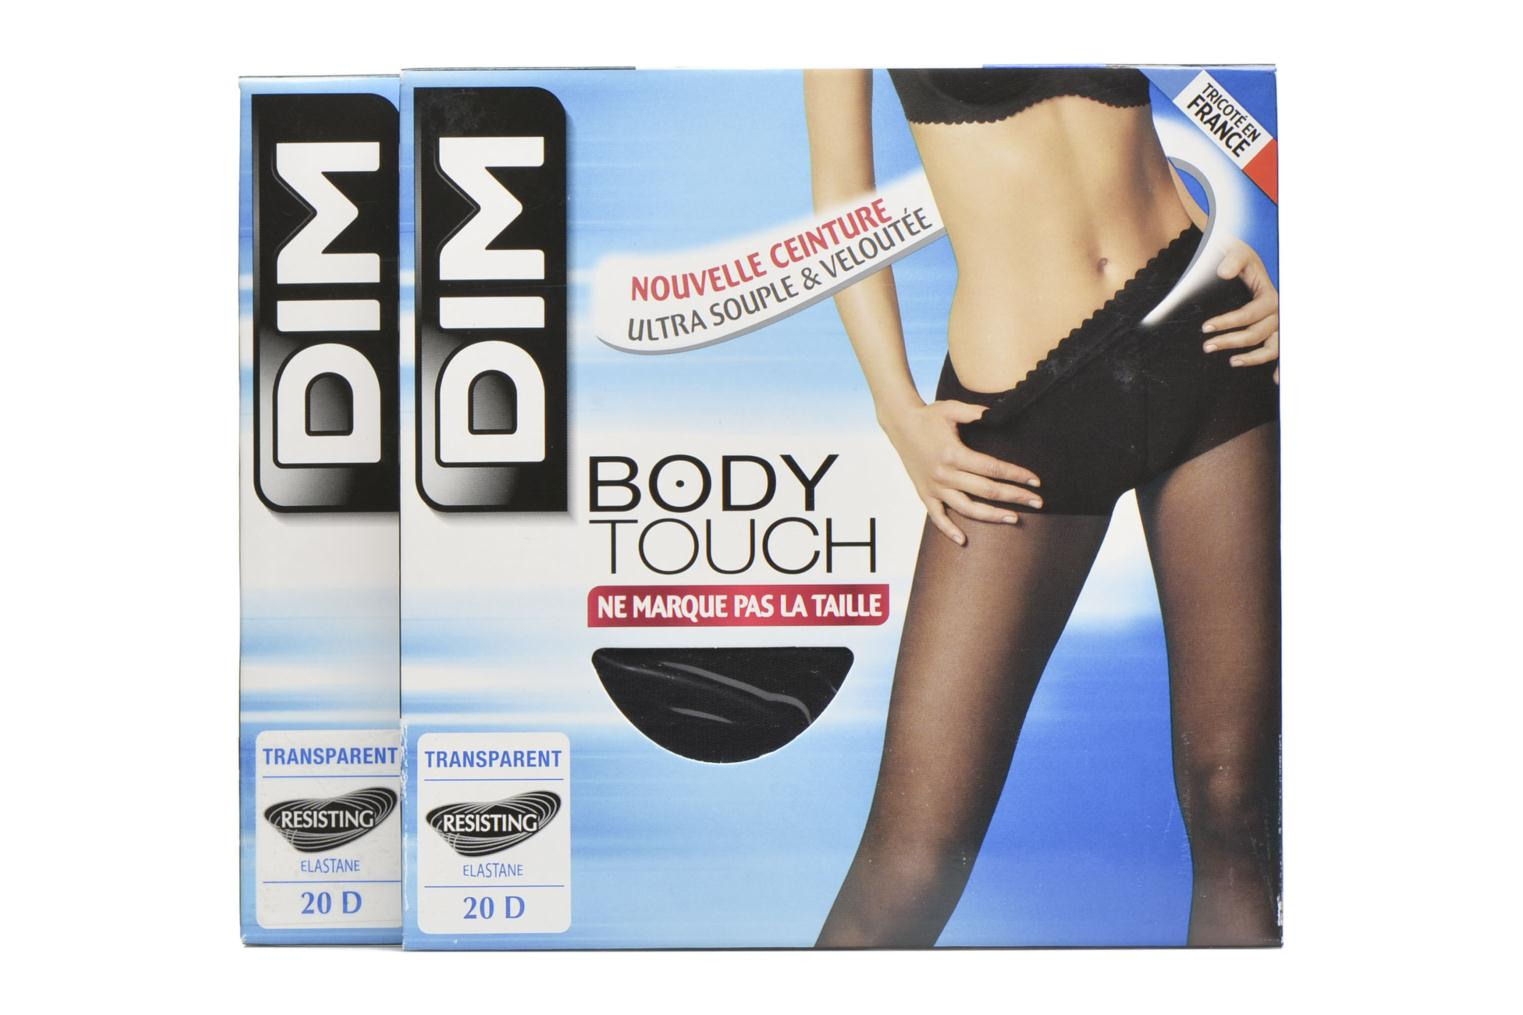 Panty BODY TOUCH VOILE 2-pack 0HZ NOIR